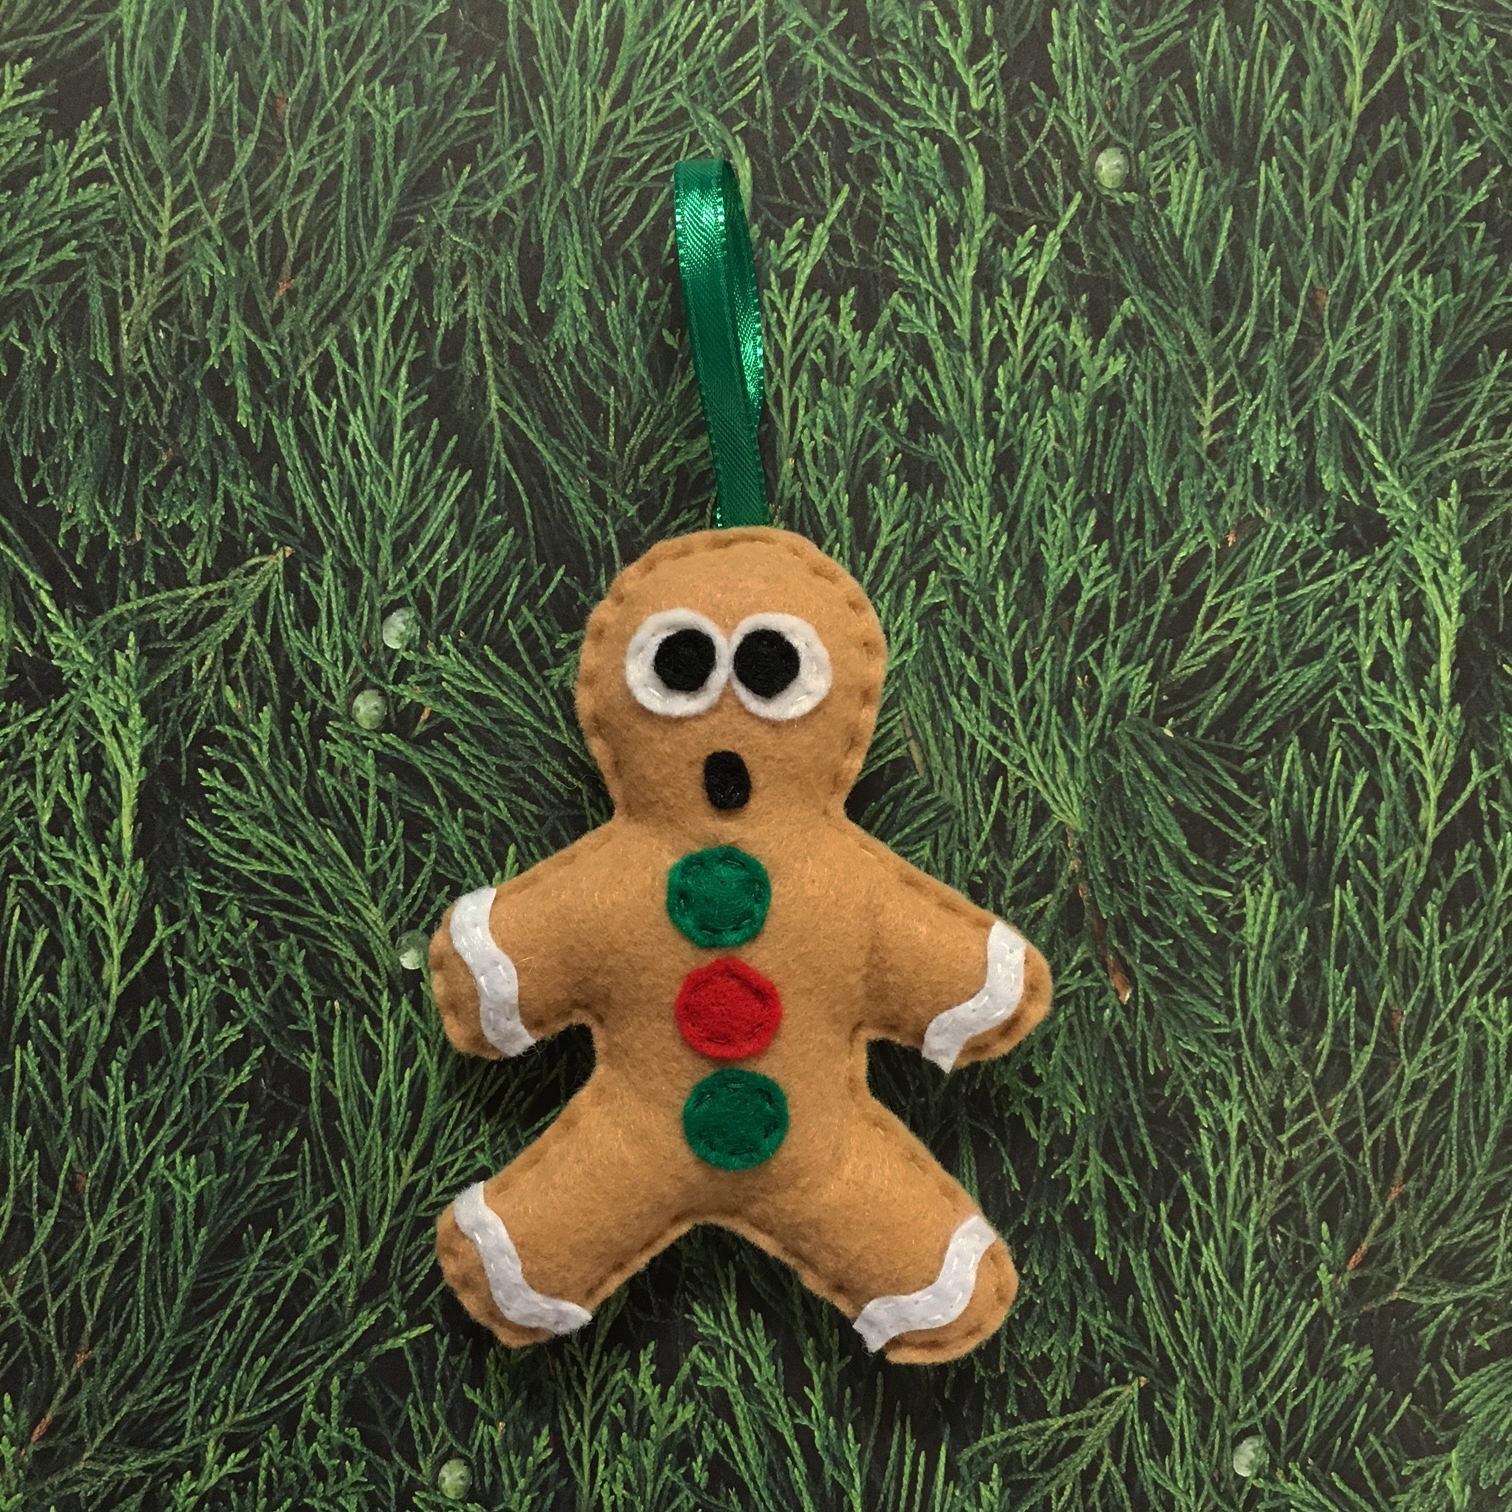 Gingerbread Man Ornament Felt